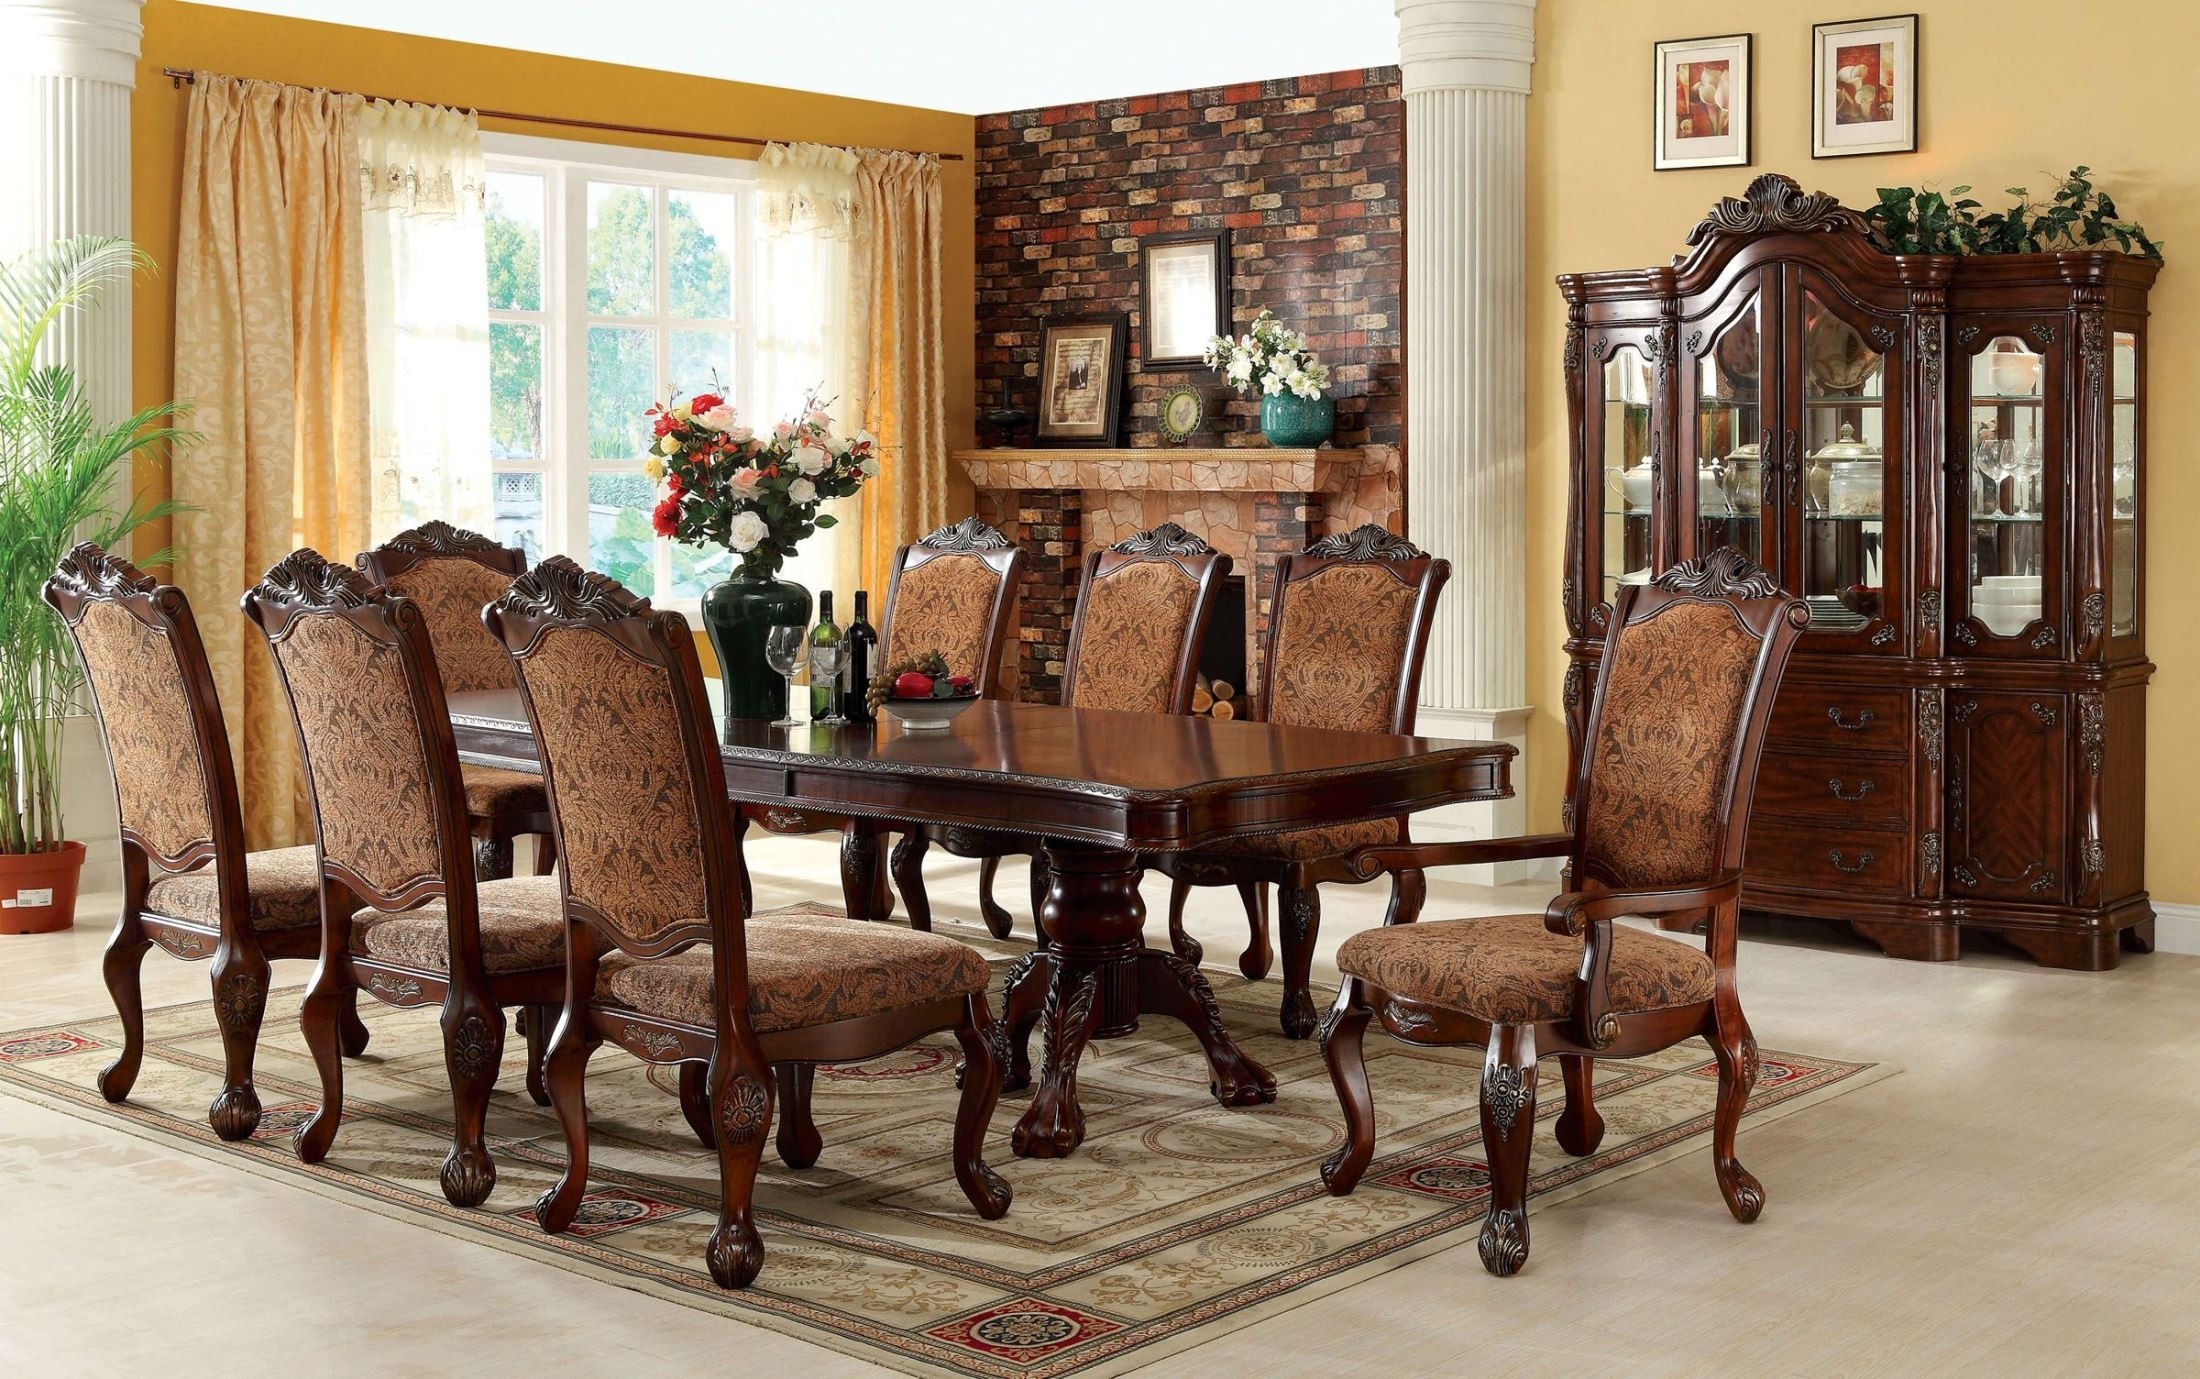 Cromwell antique cherry formal dining room set cm3103t for Breakfast room sets